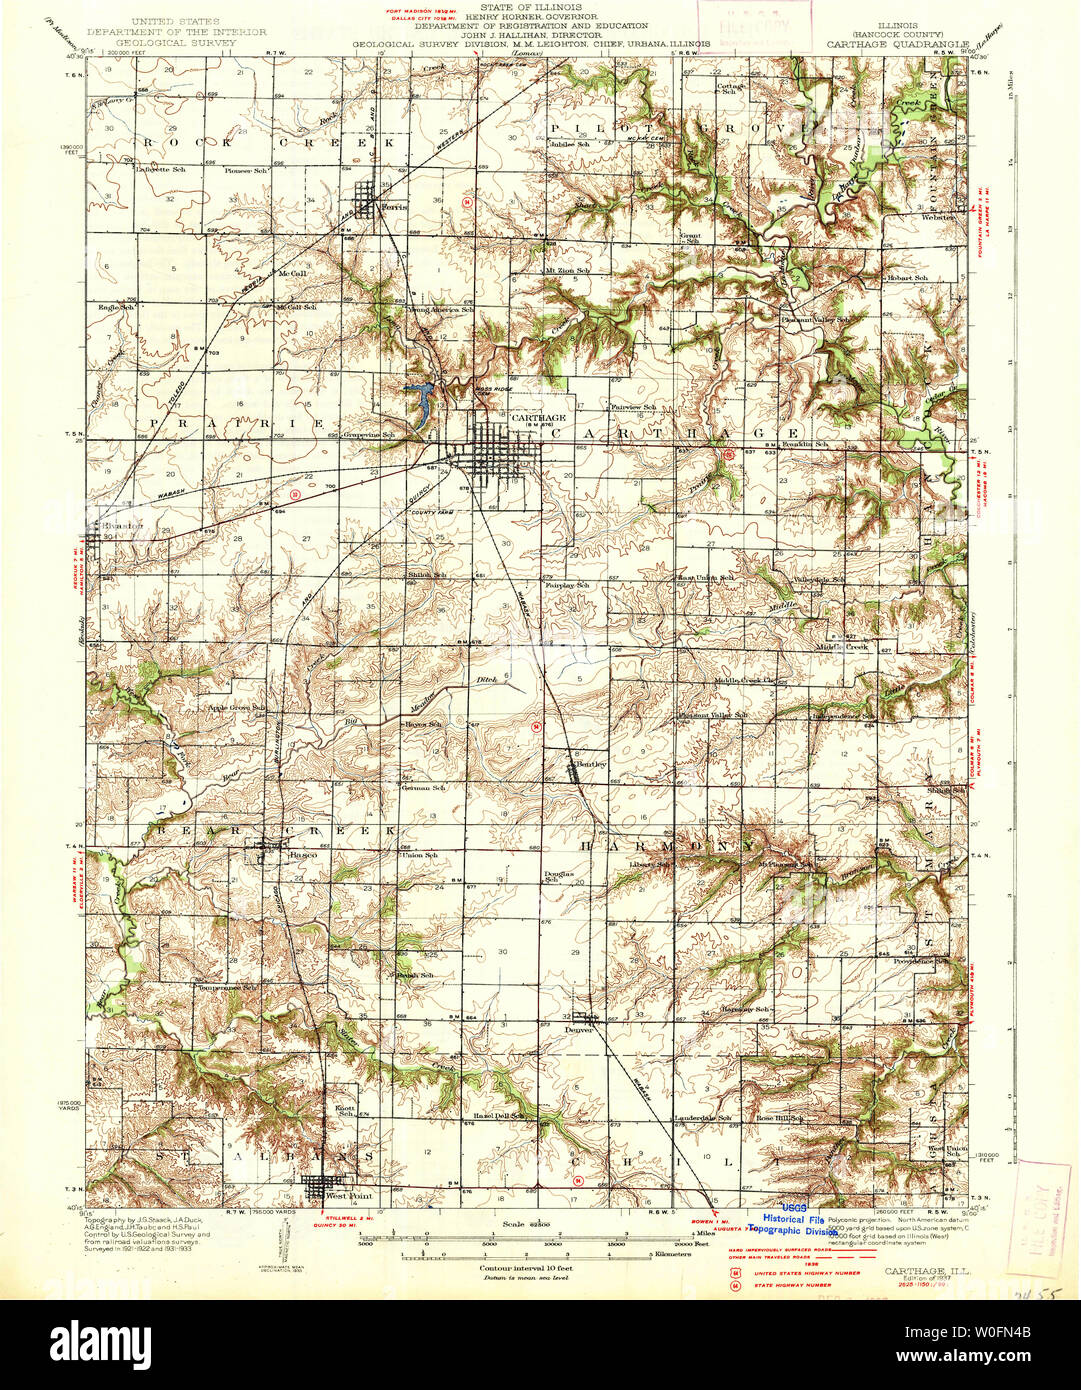 USGS TOPO Map Illinois IL Carthage 309321 1937 62500 ... Il Highway Map on il maps with counties and cities, il railroad map, bethalto il map, waterloo ne map, il city map, burbank street map, kankakee county township map, hoffman estates il map, il county map, il highway conditions, laporte county township map, il 355 map, il tollway map, woodstock il map, il senate district map, huntley il map, il river map, il state map, i-64 ky map, burbank il map,